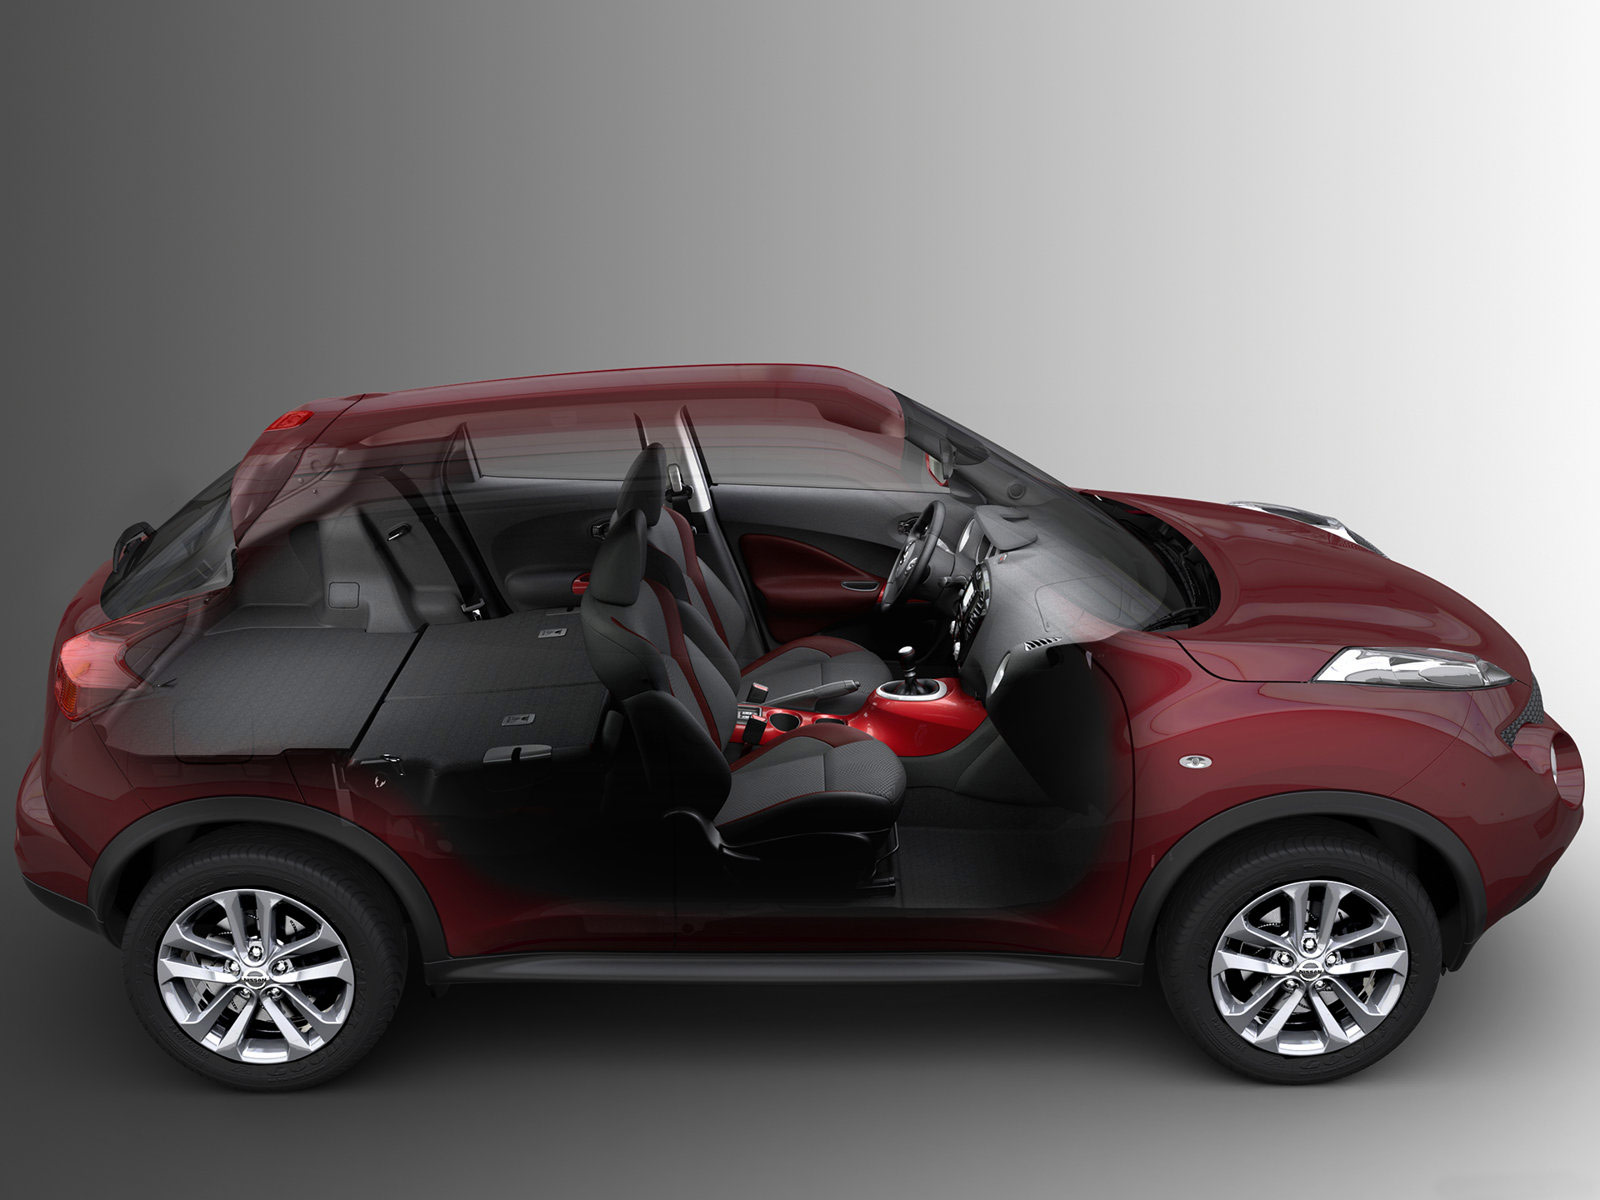 2011 nissan juke japanese car photos. Black Bedroom Furniture Sets. Home Design Ideas